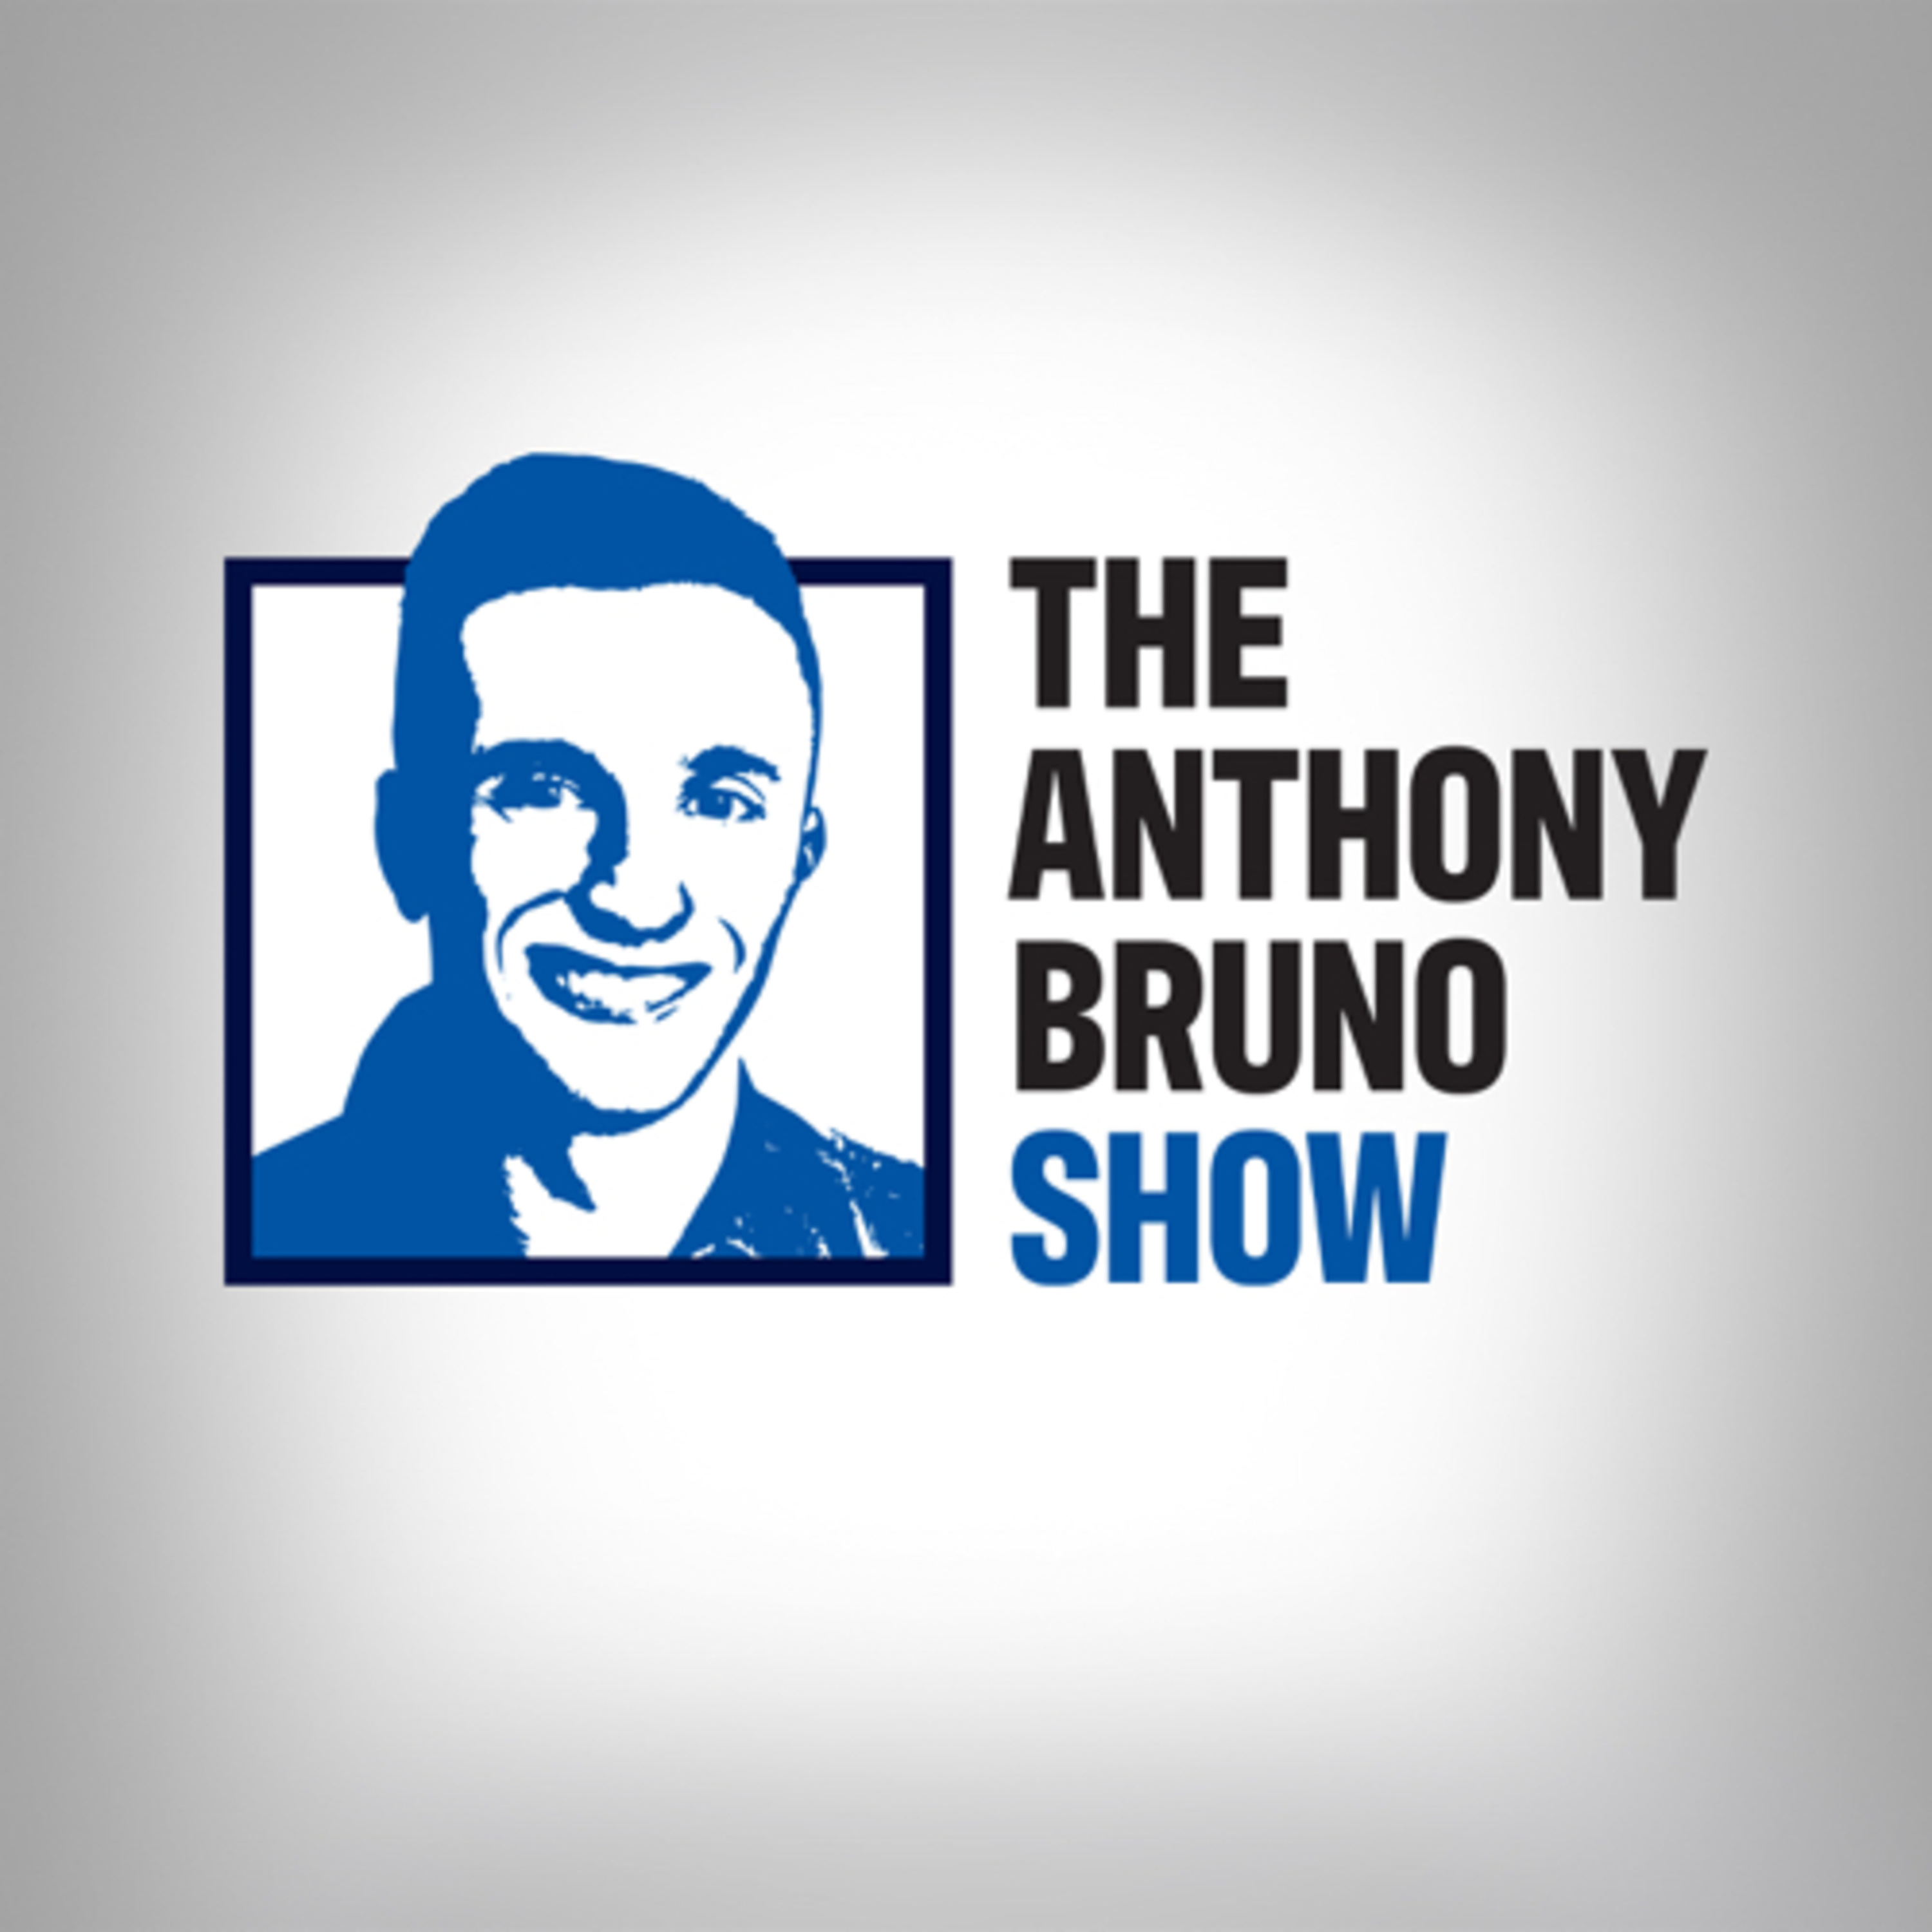 The Anthony Bruno Show